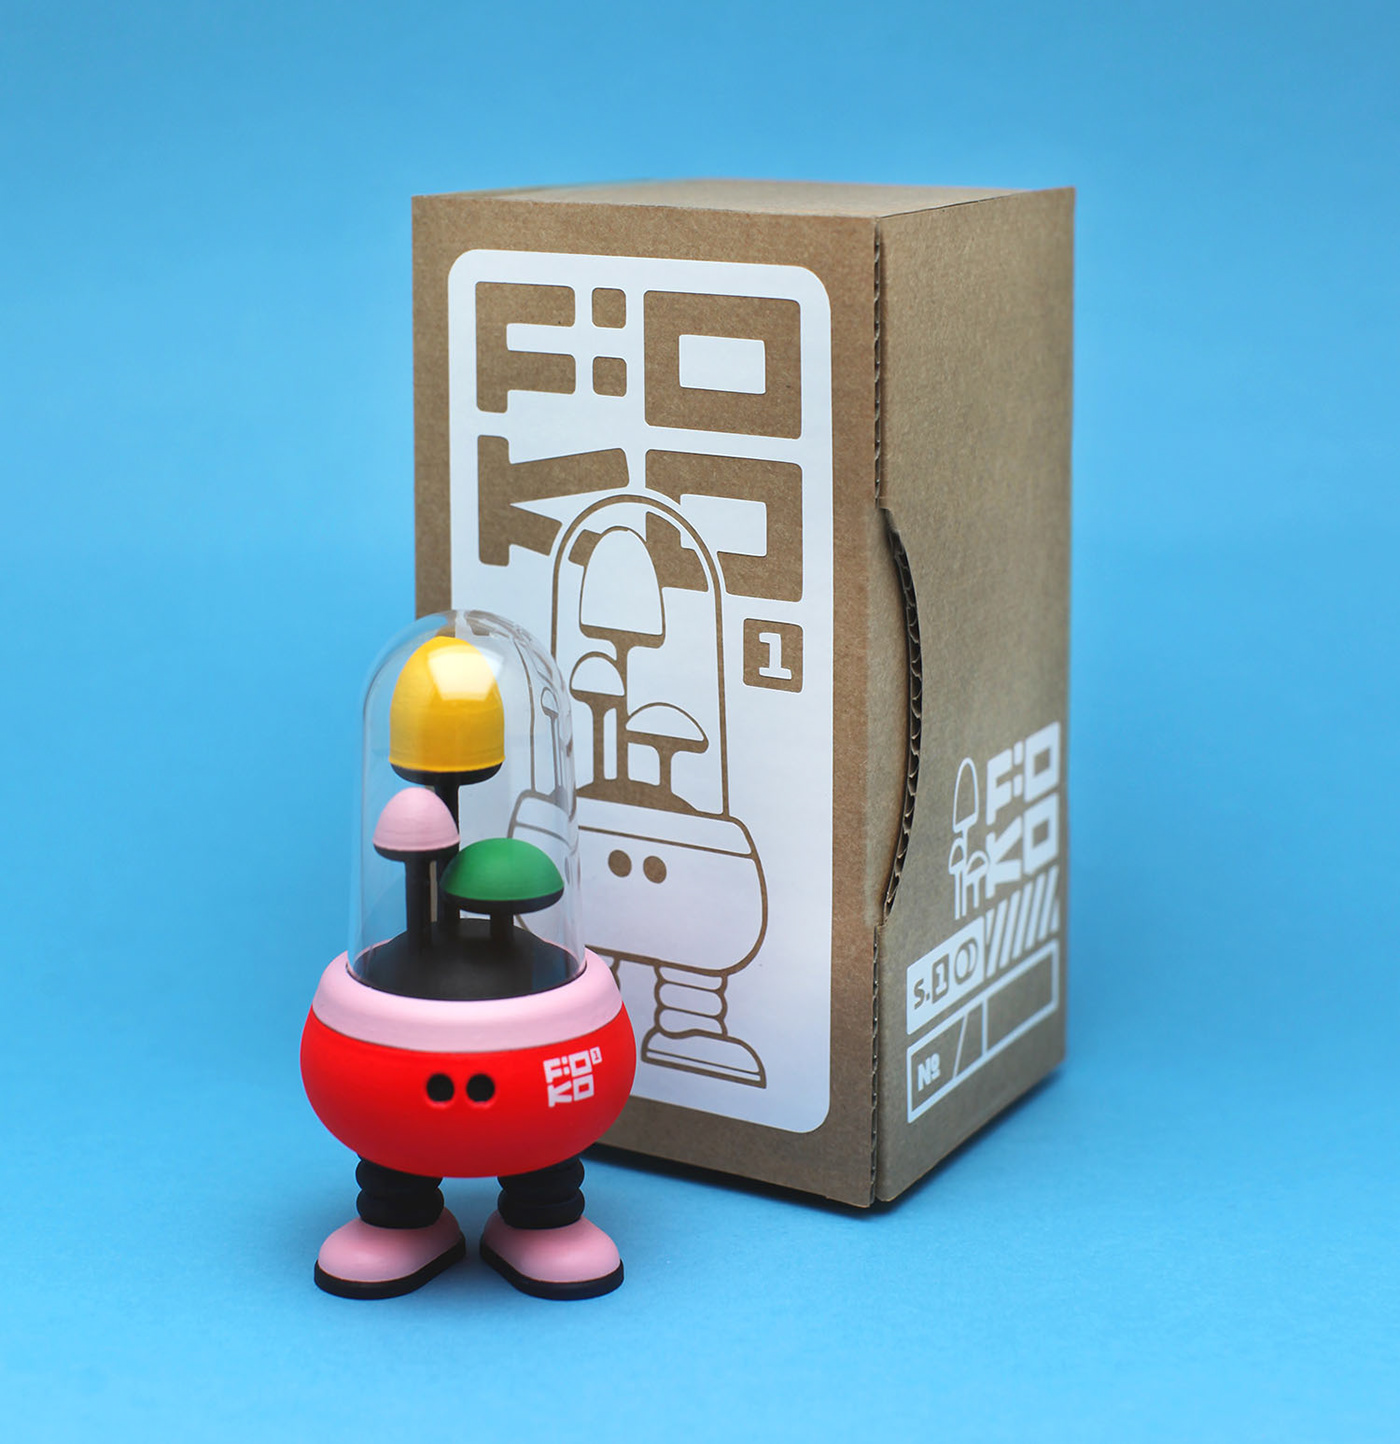 3D model 3d modeling 3d printing 3d toy Character design  handpainted toy loulou tummie robot toy toy design